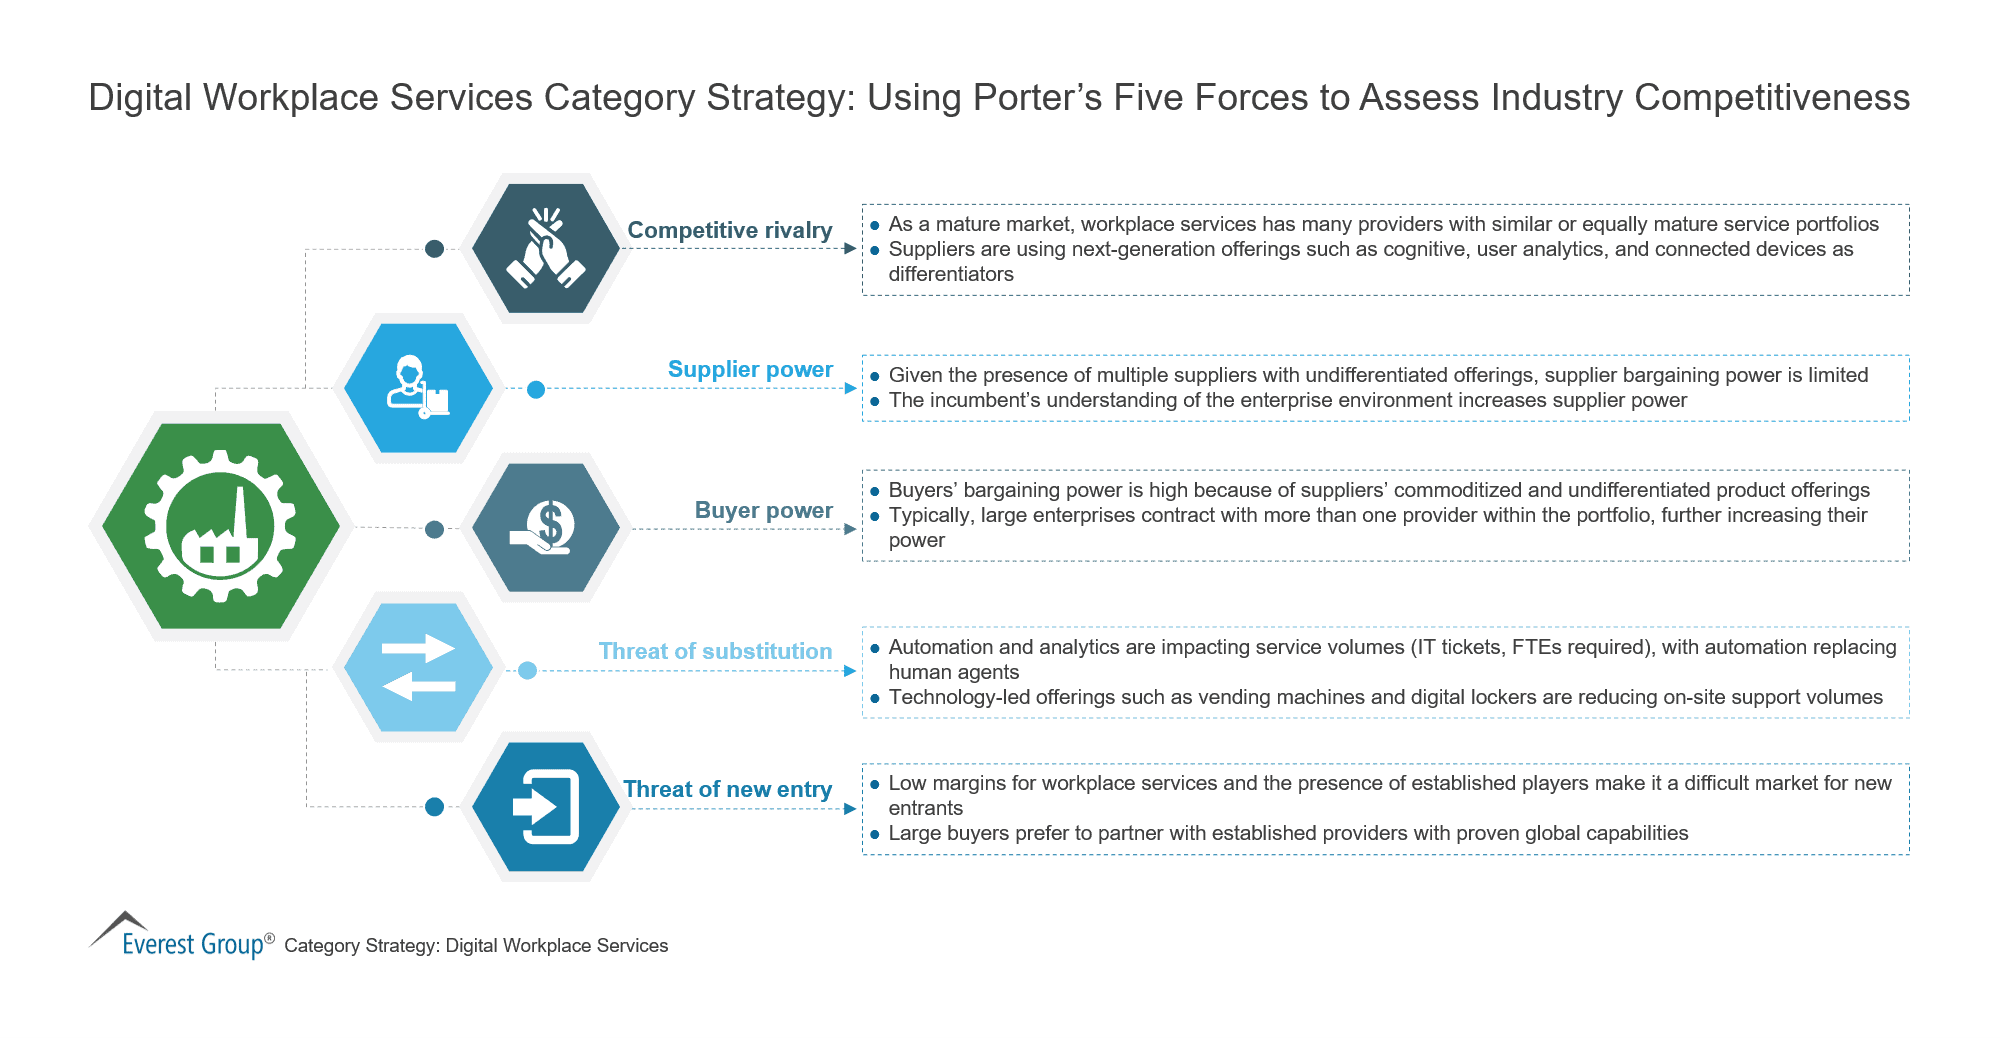 Digital Workplace Services Category Strategy-Using Porter's Five Forces to Assess Industry Competitiveness